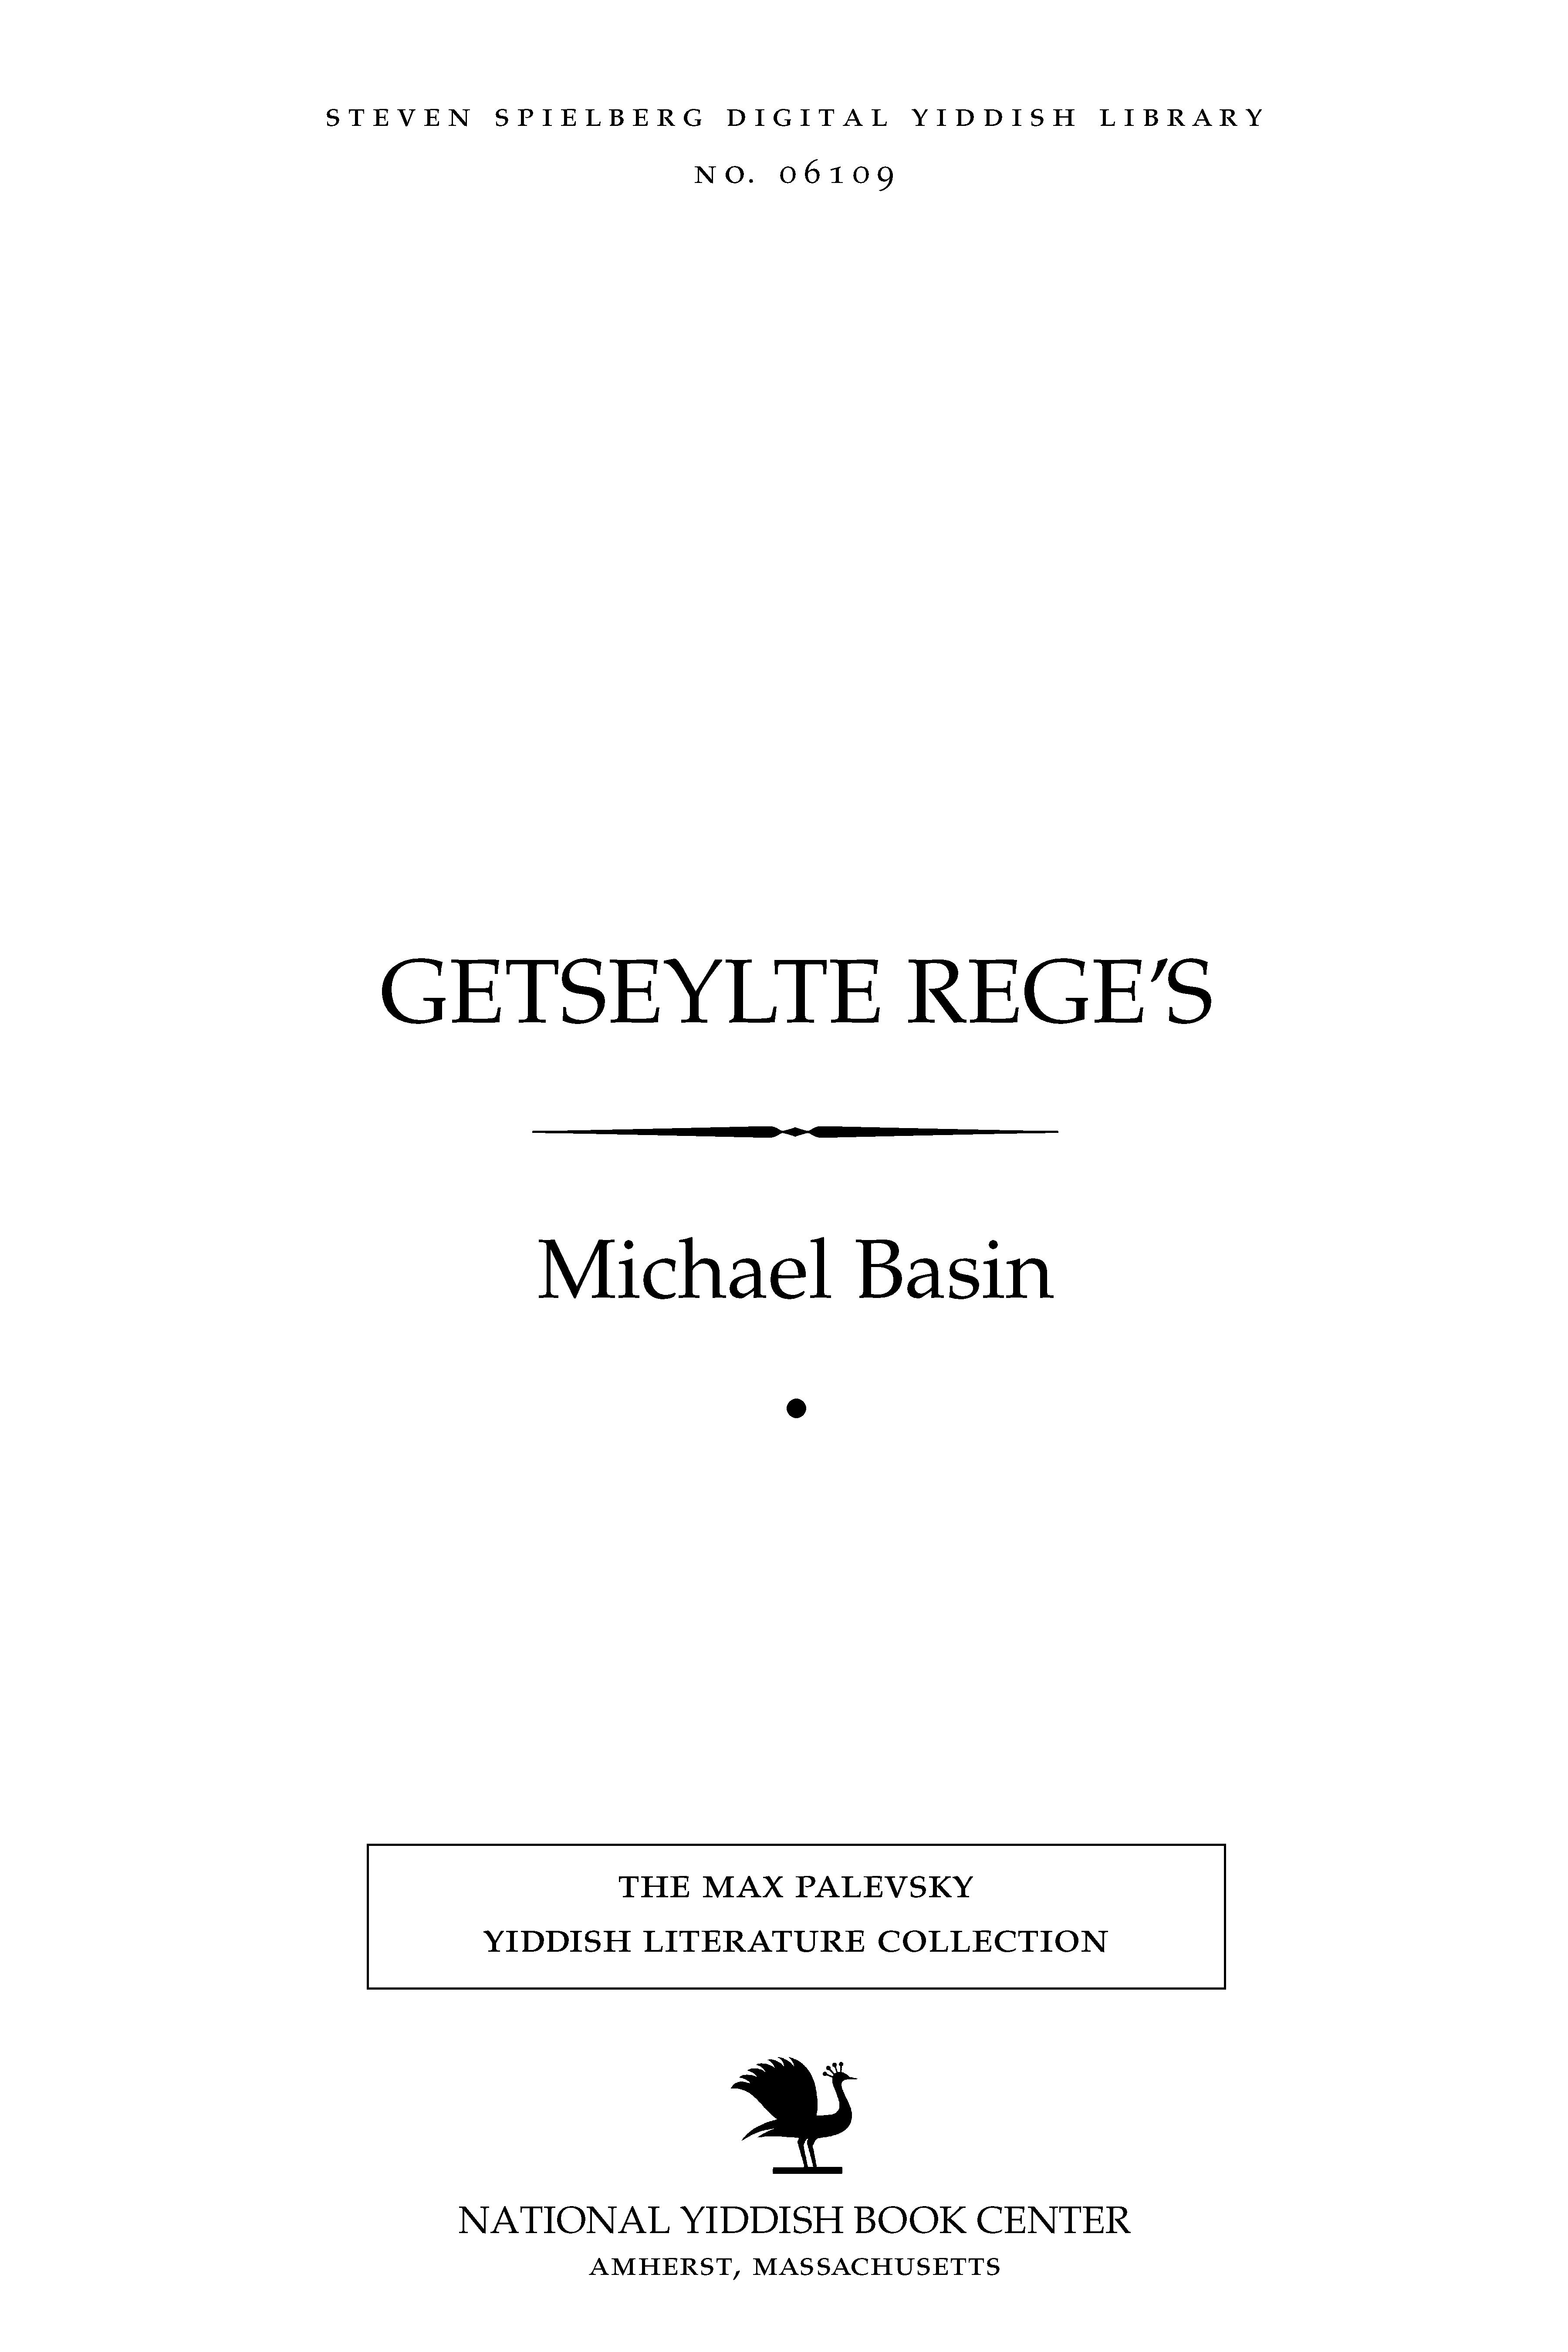 Cover of: Getseylṭe rege's